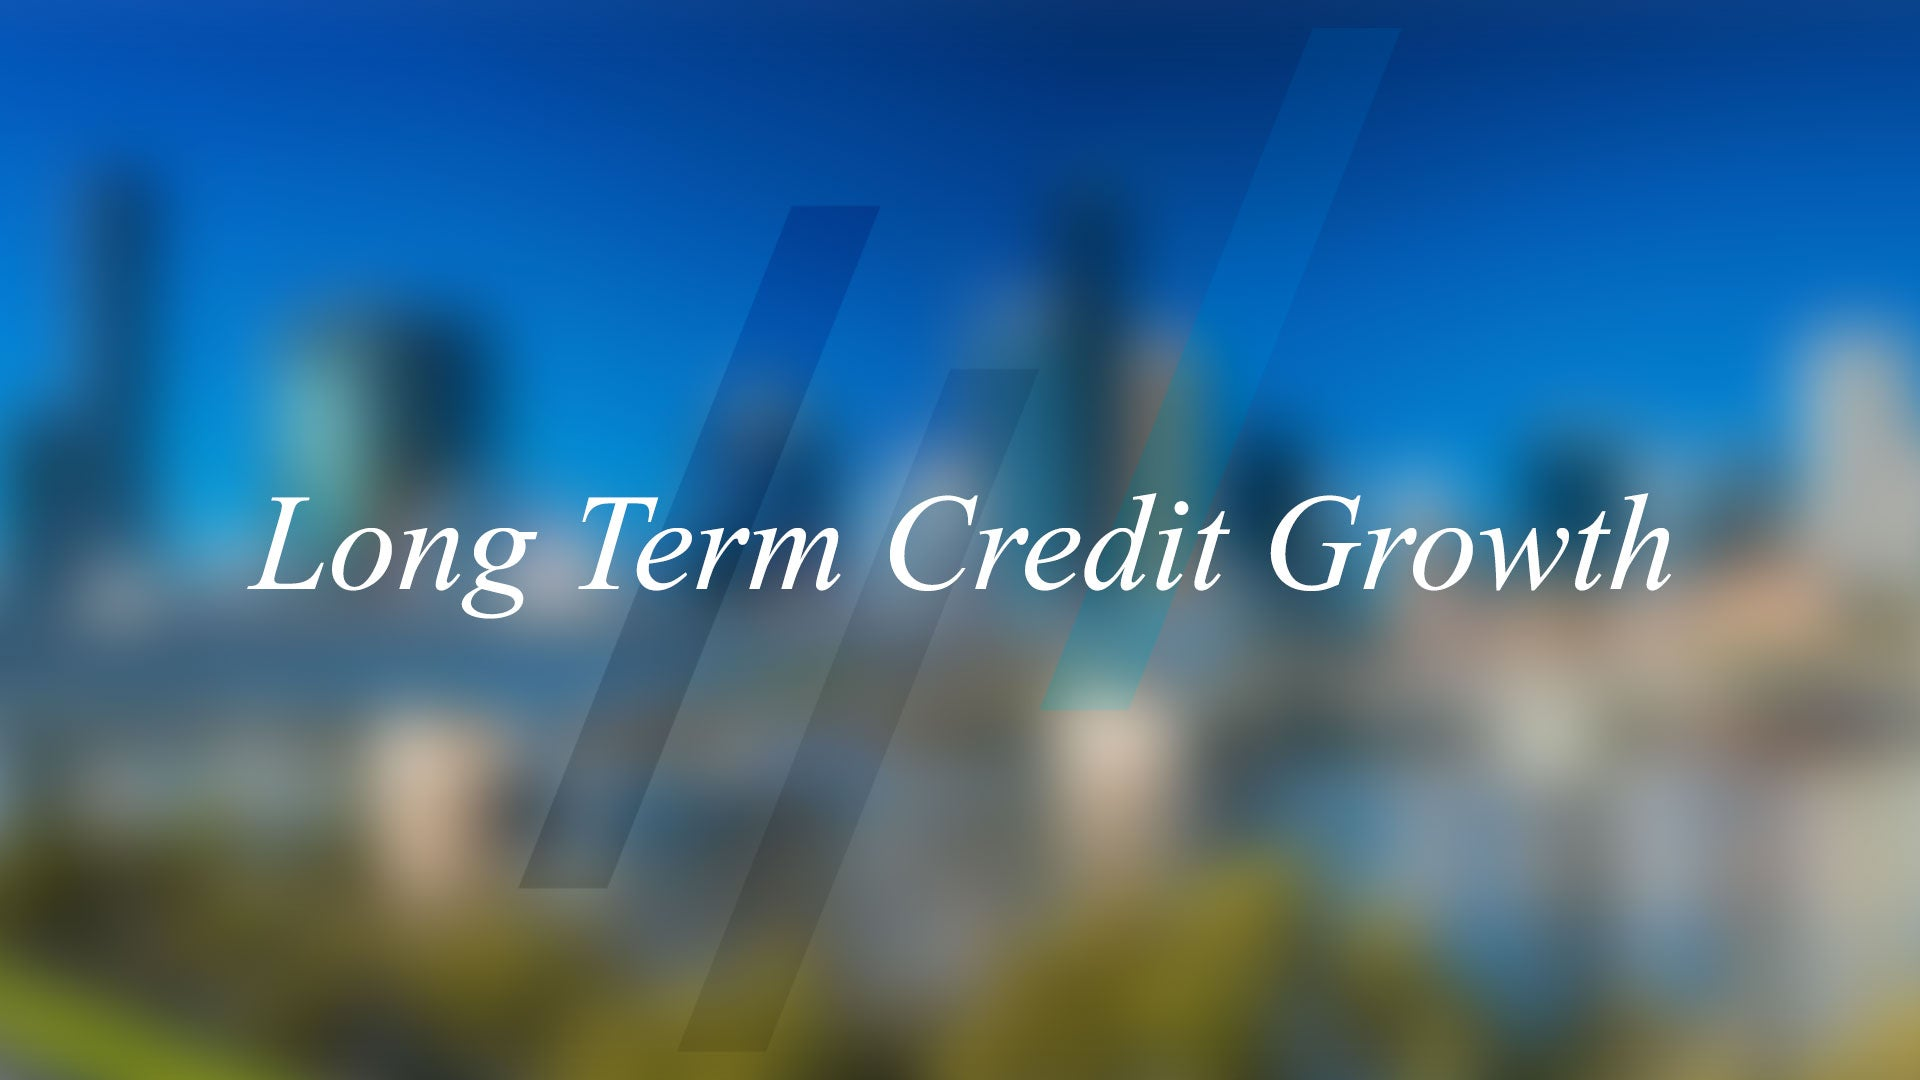 Long Term Credit Growth